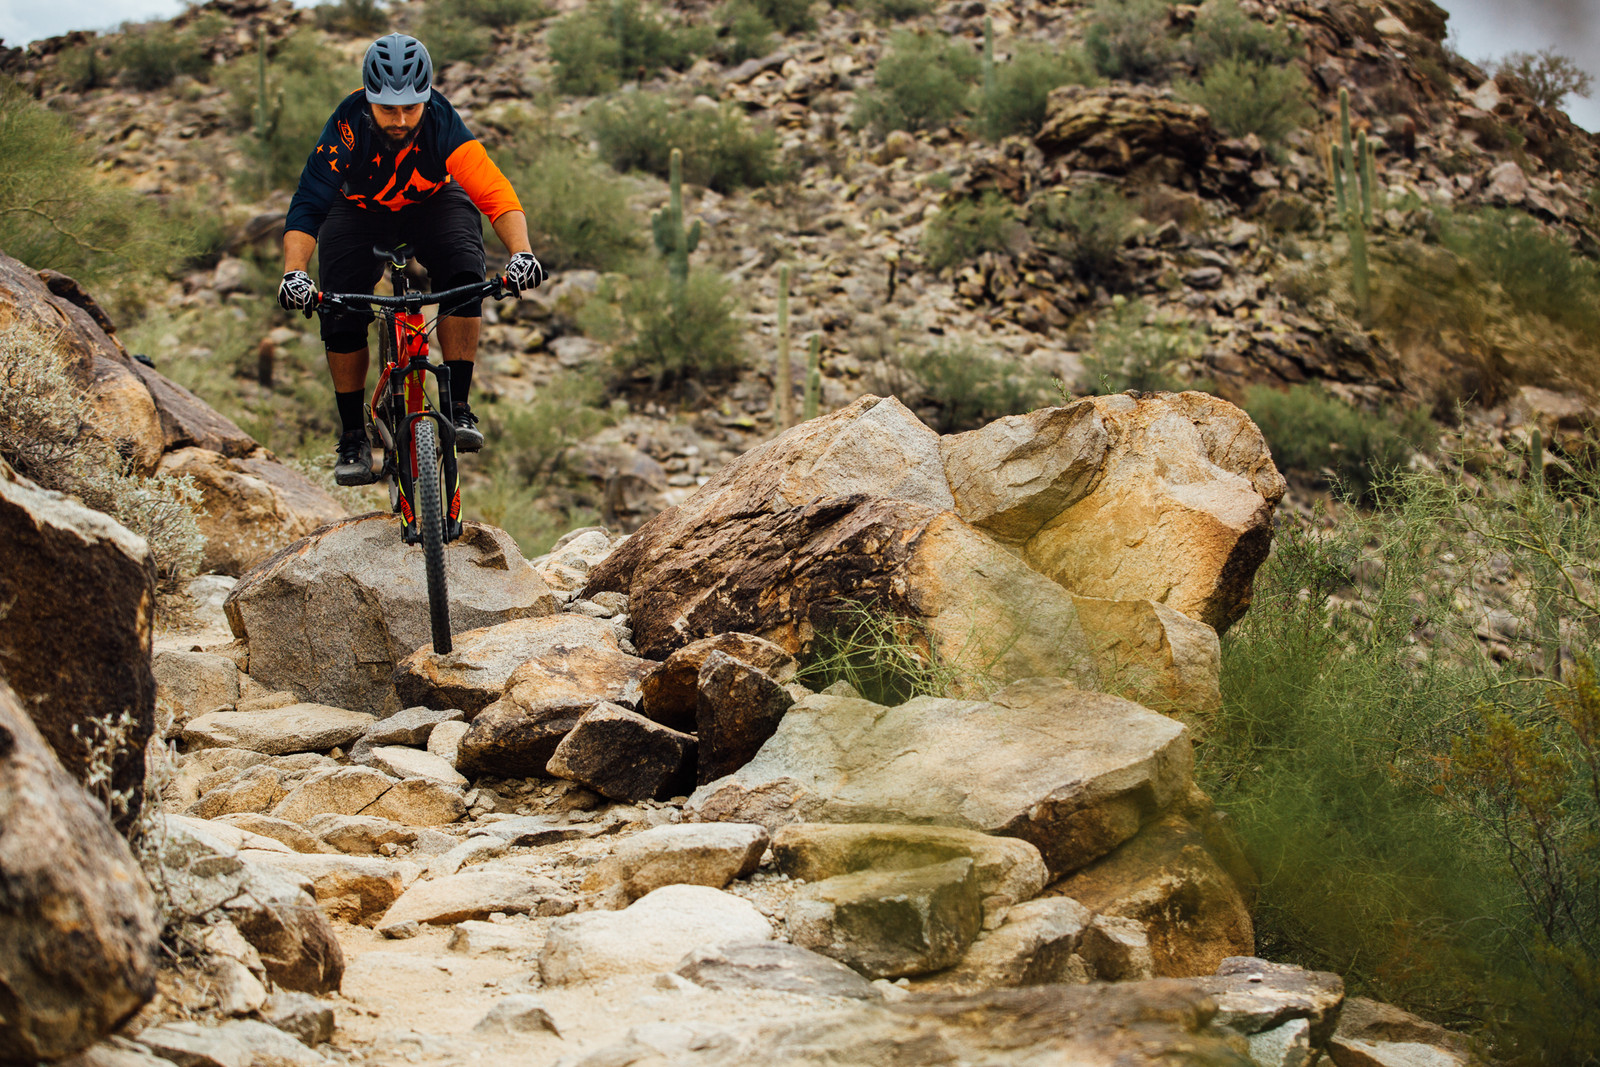 Felt Decree 3 - 2016 Vital MTB Test Sessions - Felt Decree 3 - 2016 Vital MTB Test Sessions - Mountain Biking Pictures - Vital MTB